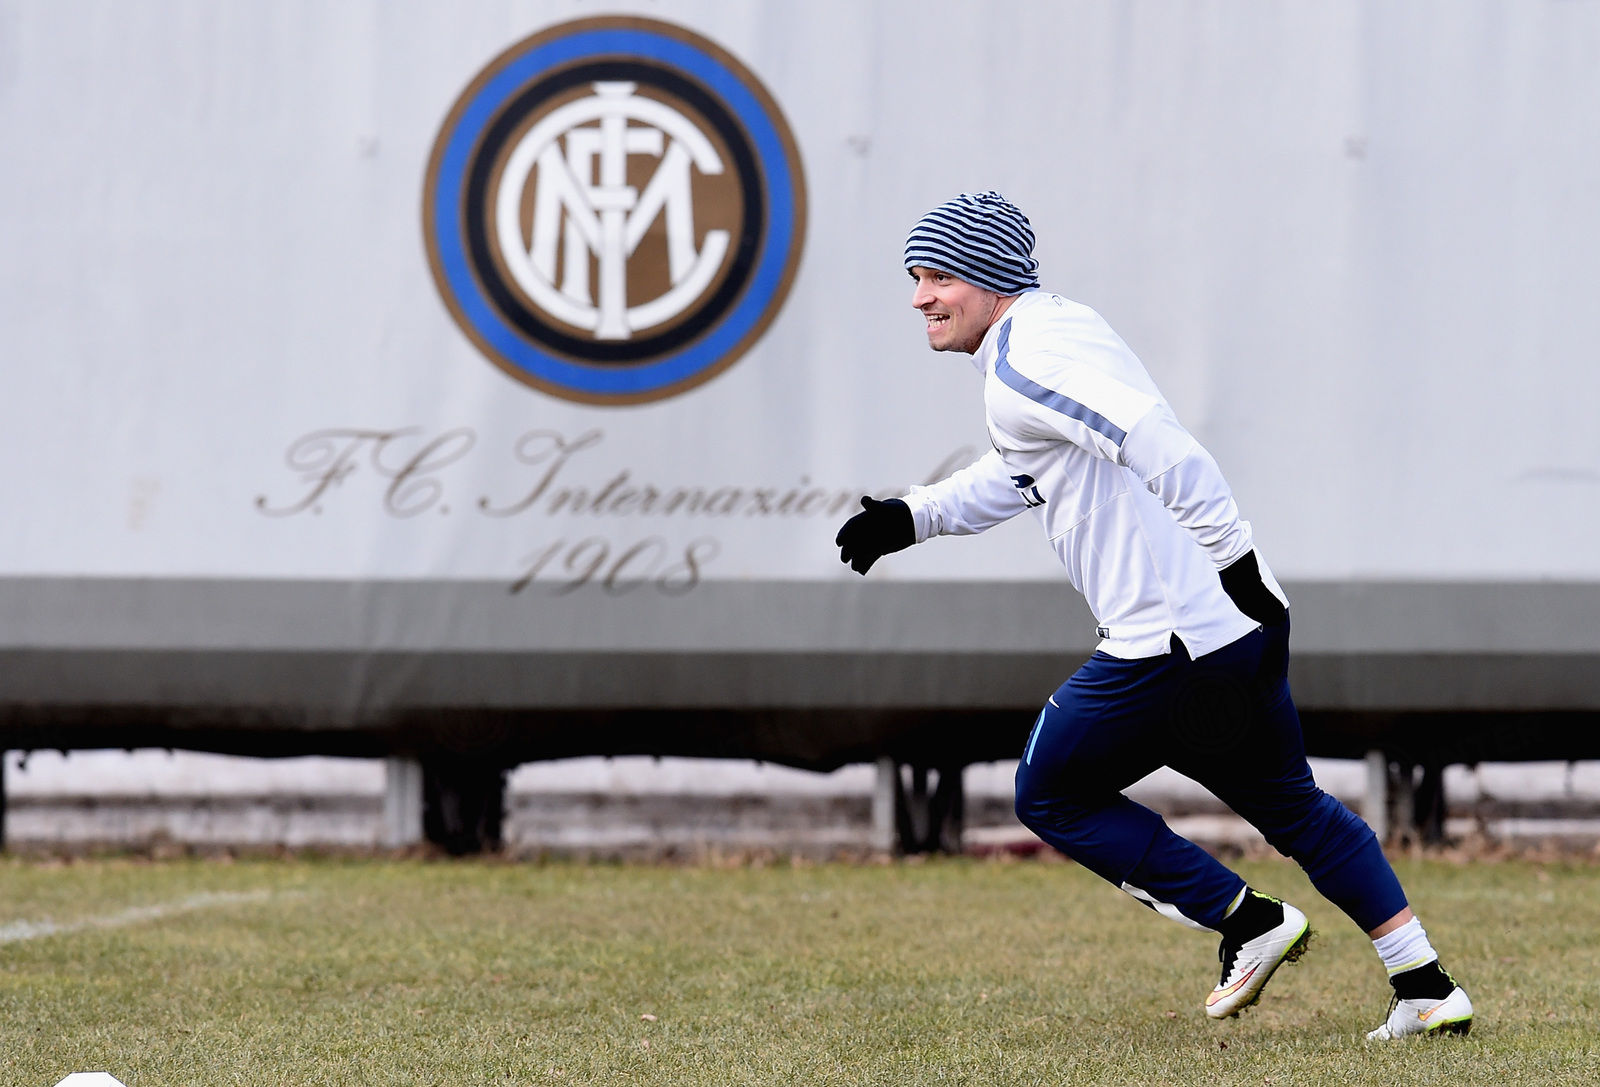 Third session ahead of Empoli